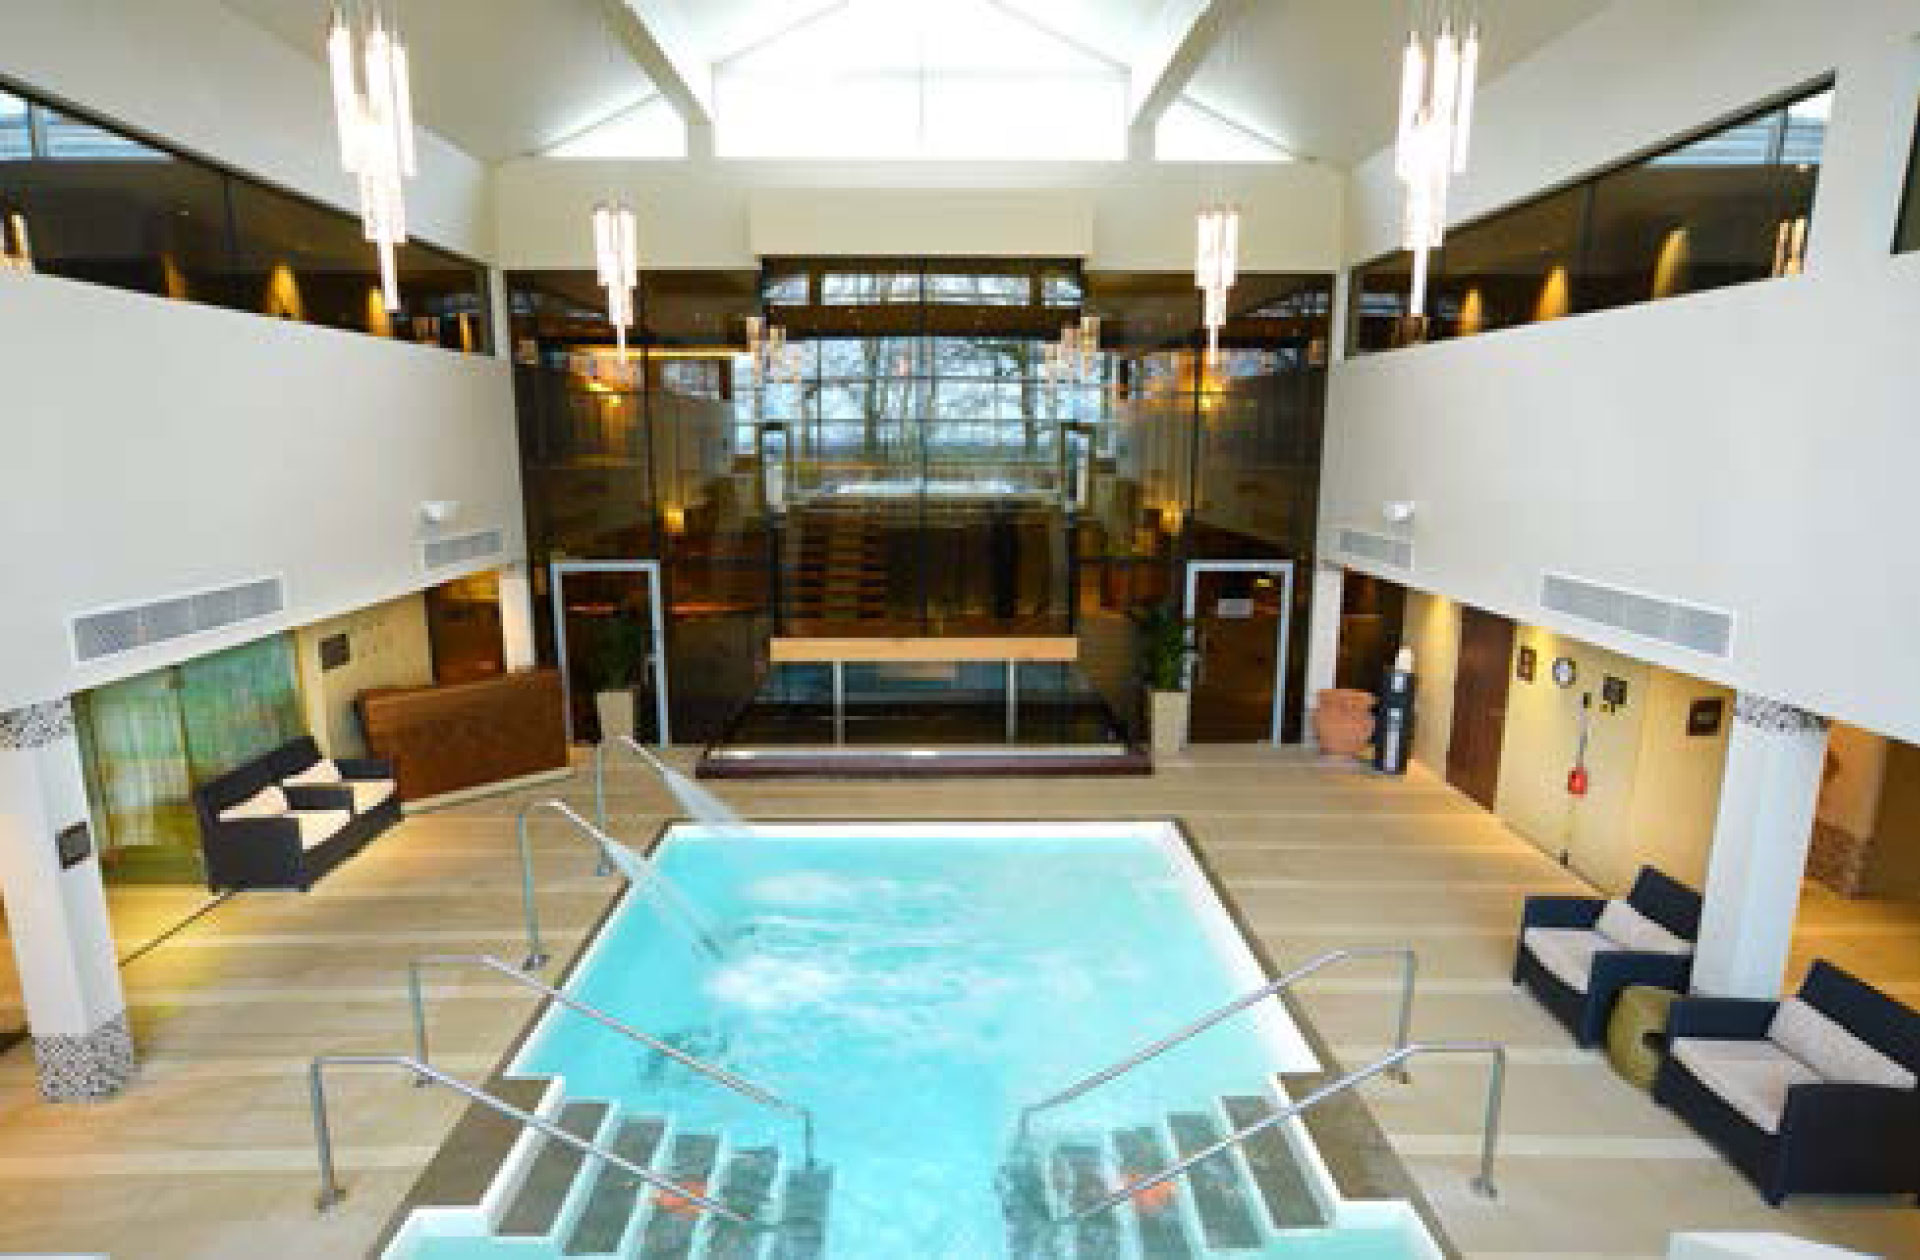 North west spa of the year winners ribby hall village blog - Preston hotels with swimming pool ...